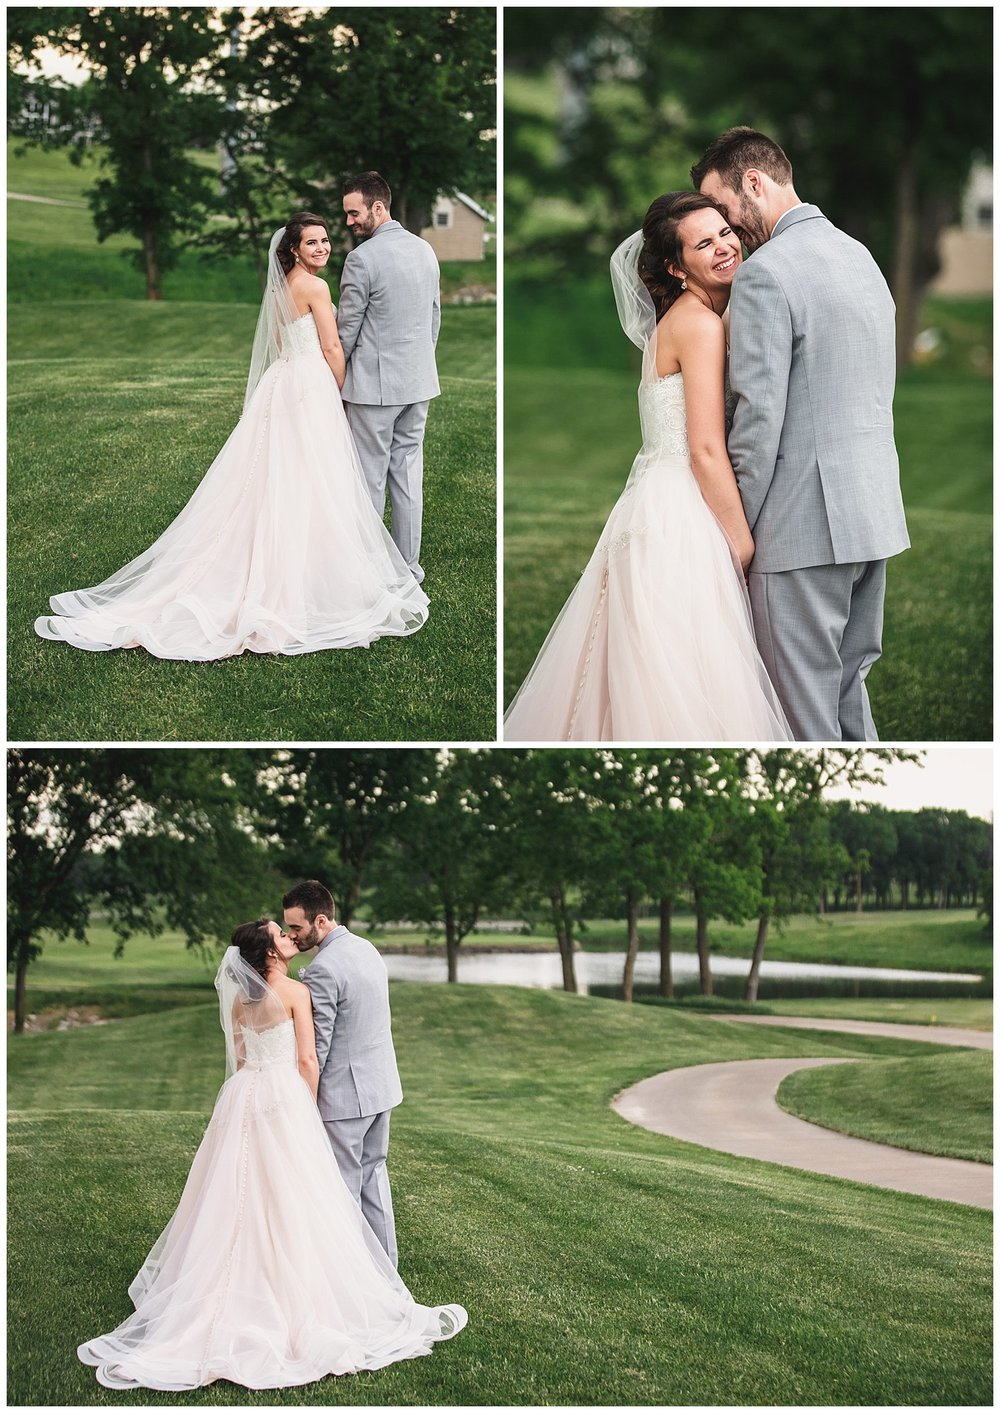 Tiffany_Greens_Golf_Club_Kansas_City_Wedding_Nikki_David_Spring_Wedding_Kelsey_Diane_Photography_0067.jpg